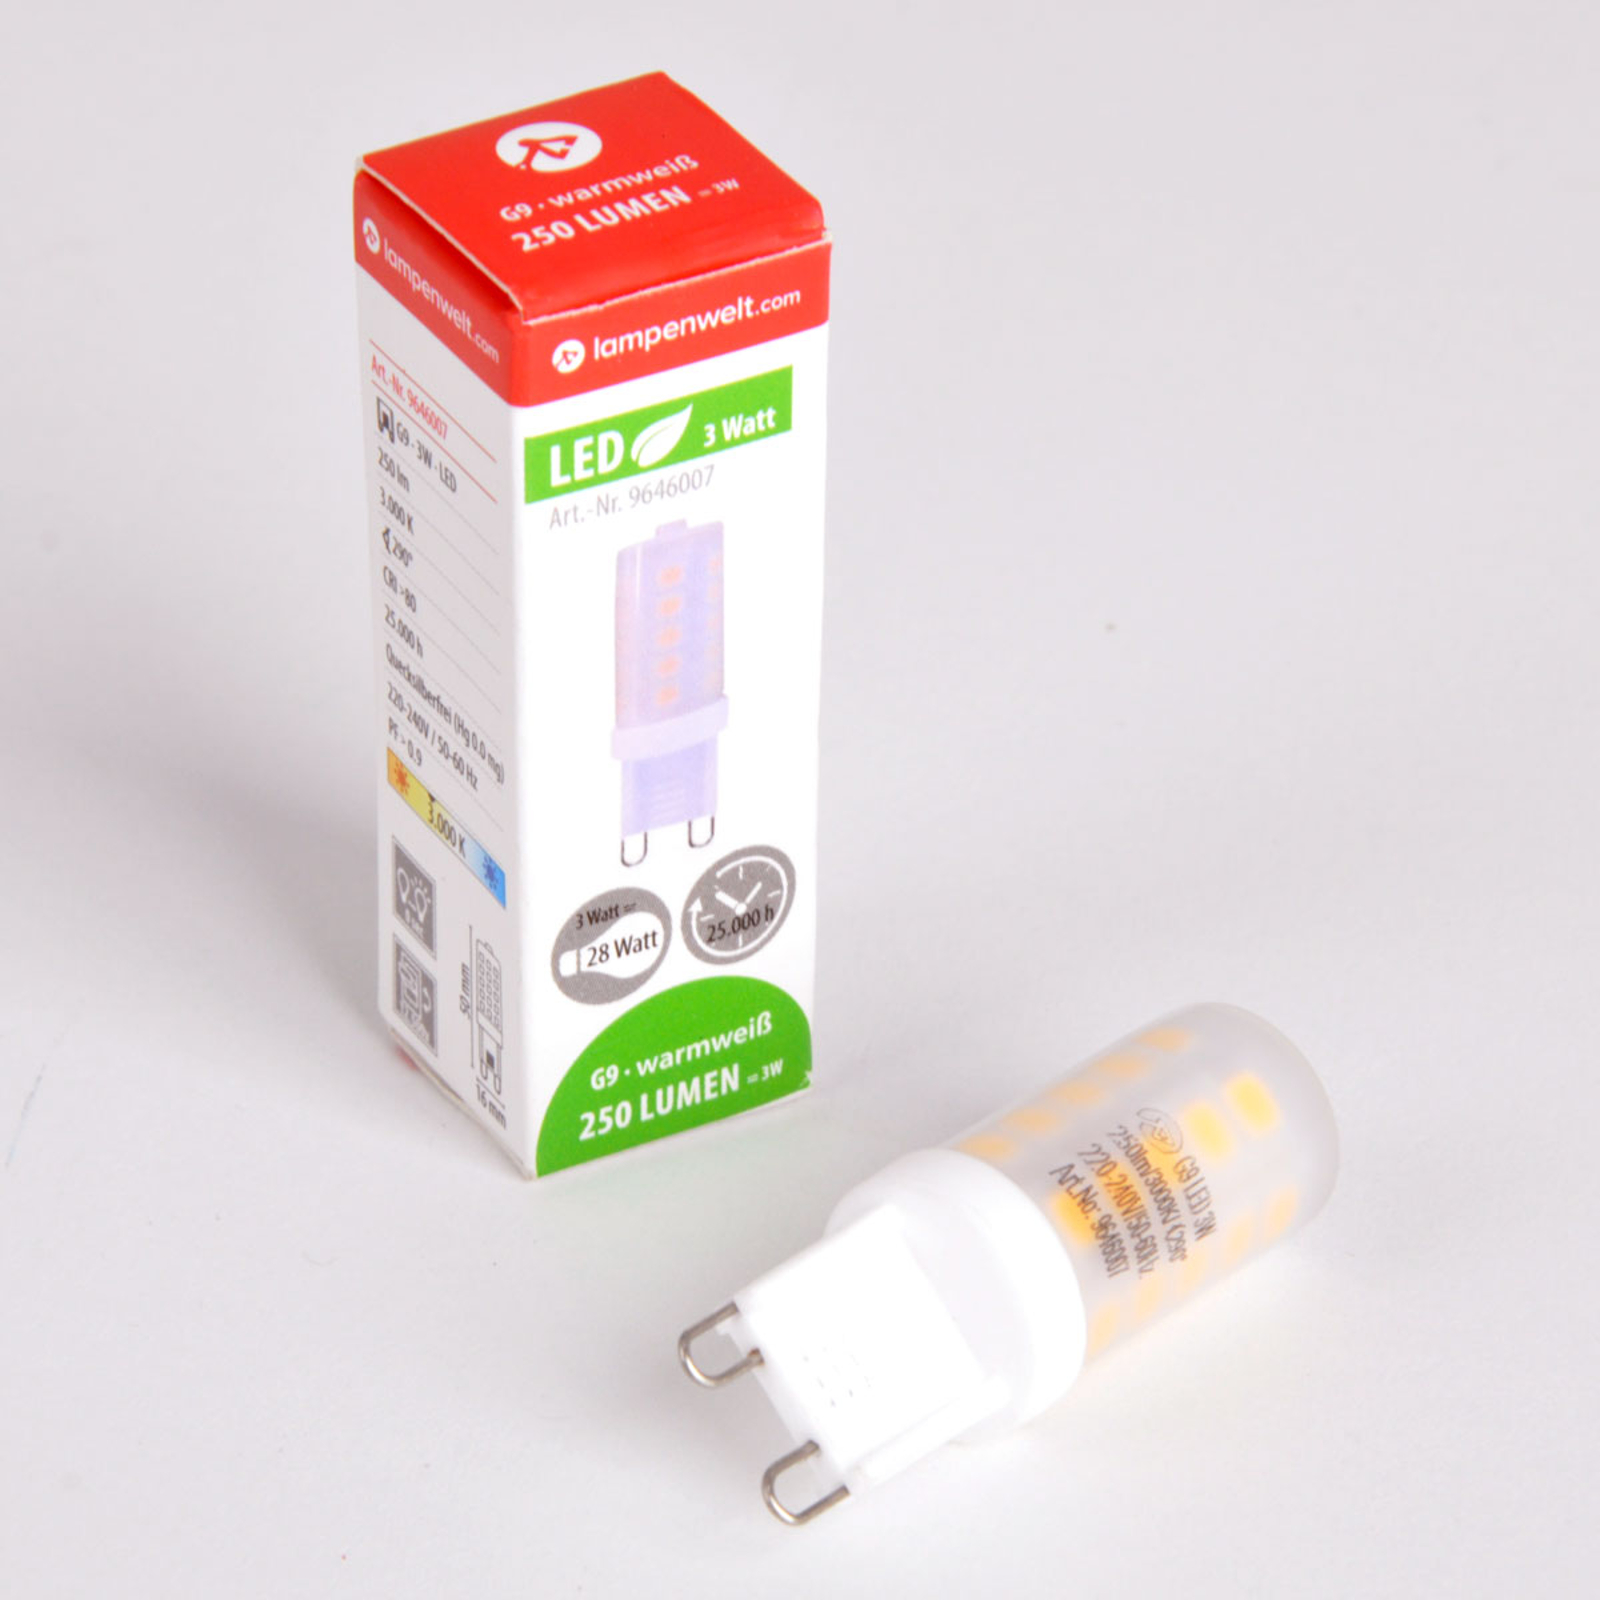 Ampoule à broches LED G9 de 3 W 830